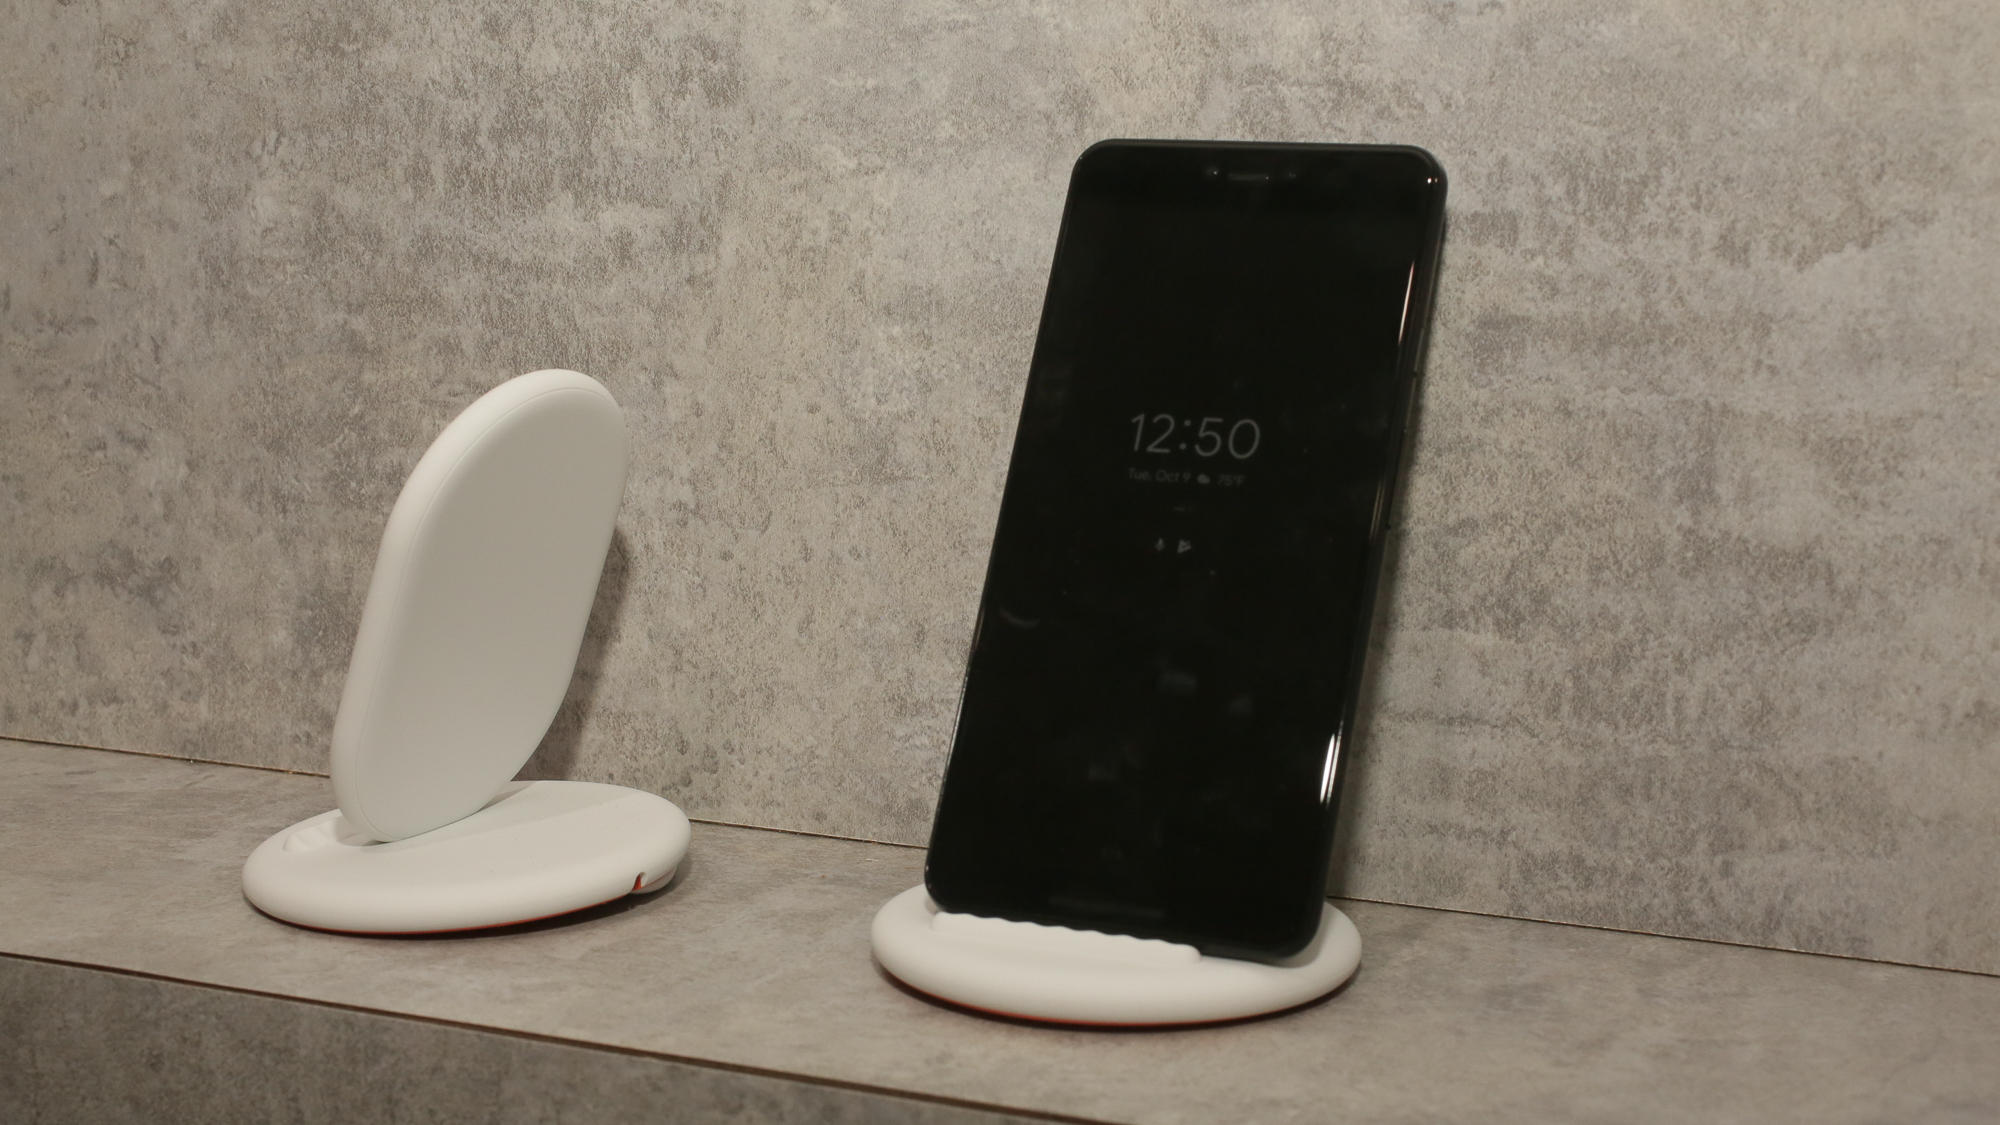 Pixel 3 in the Pixel Stand